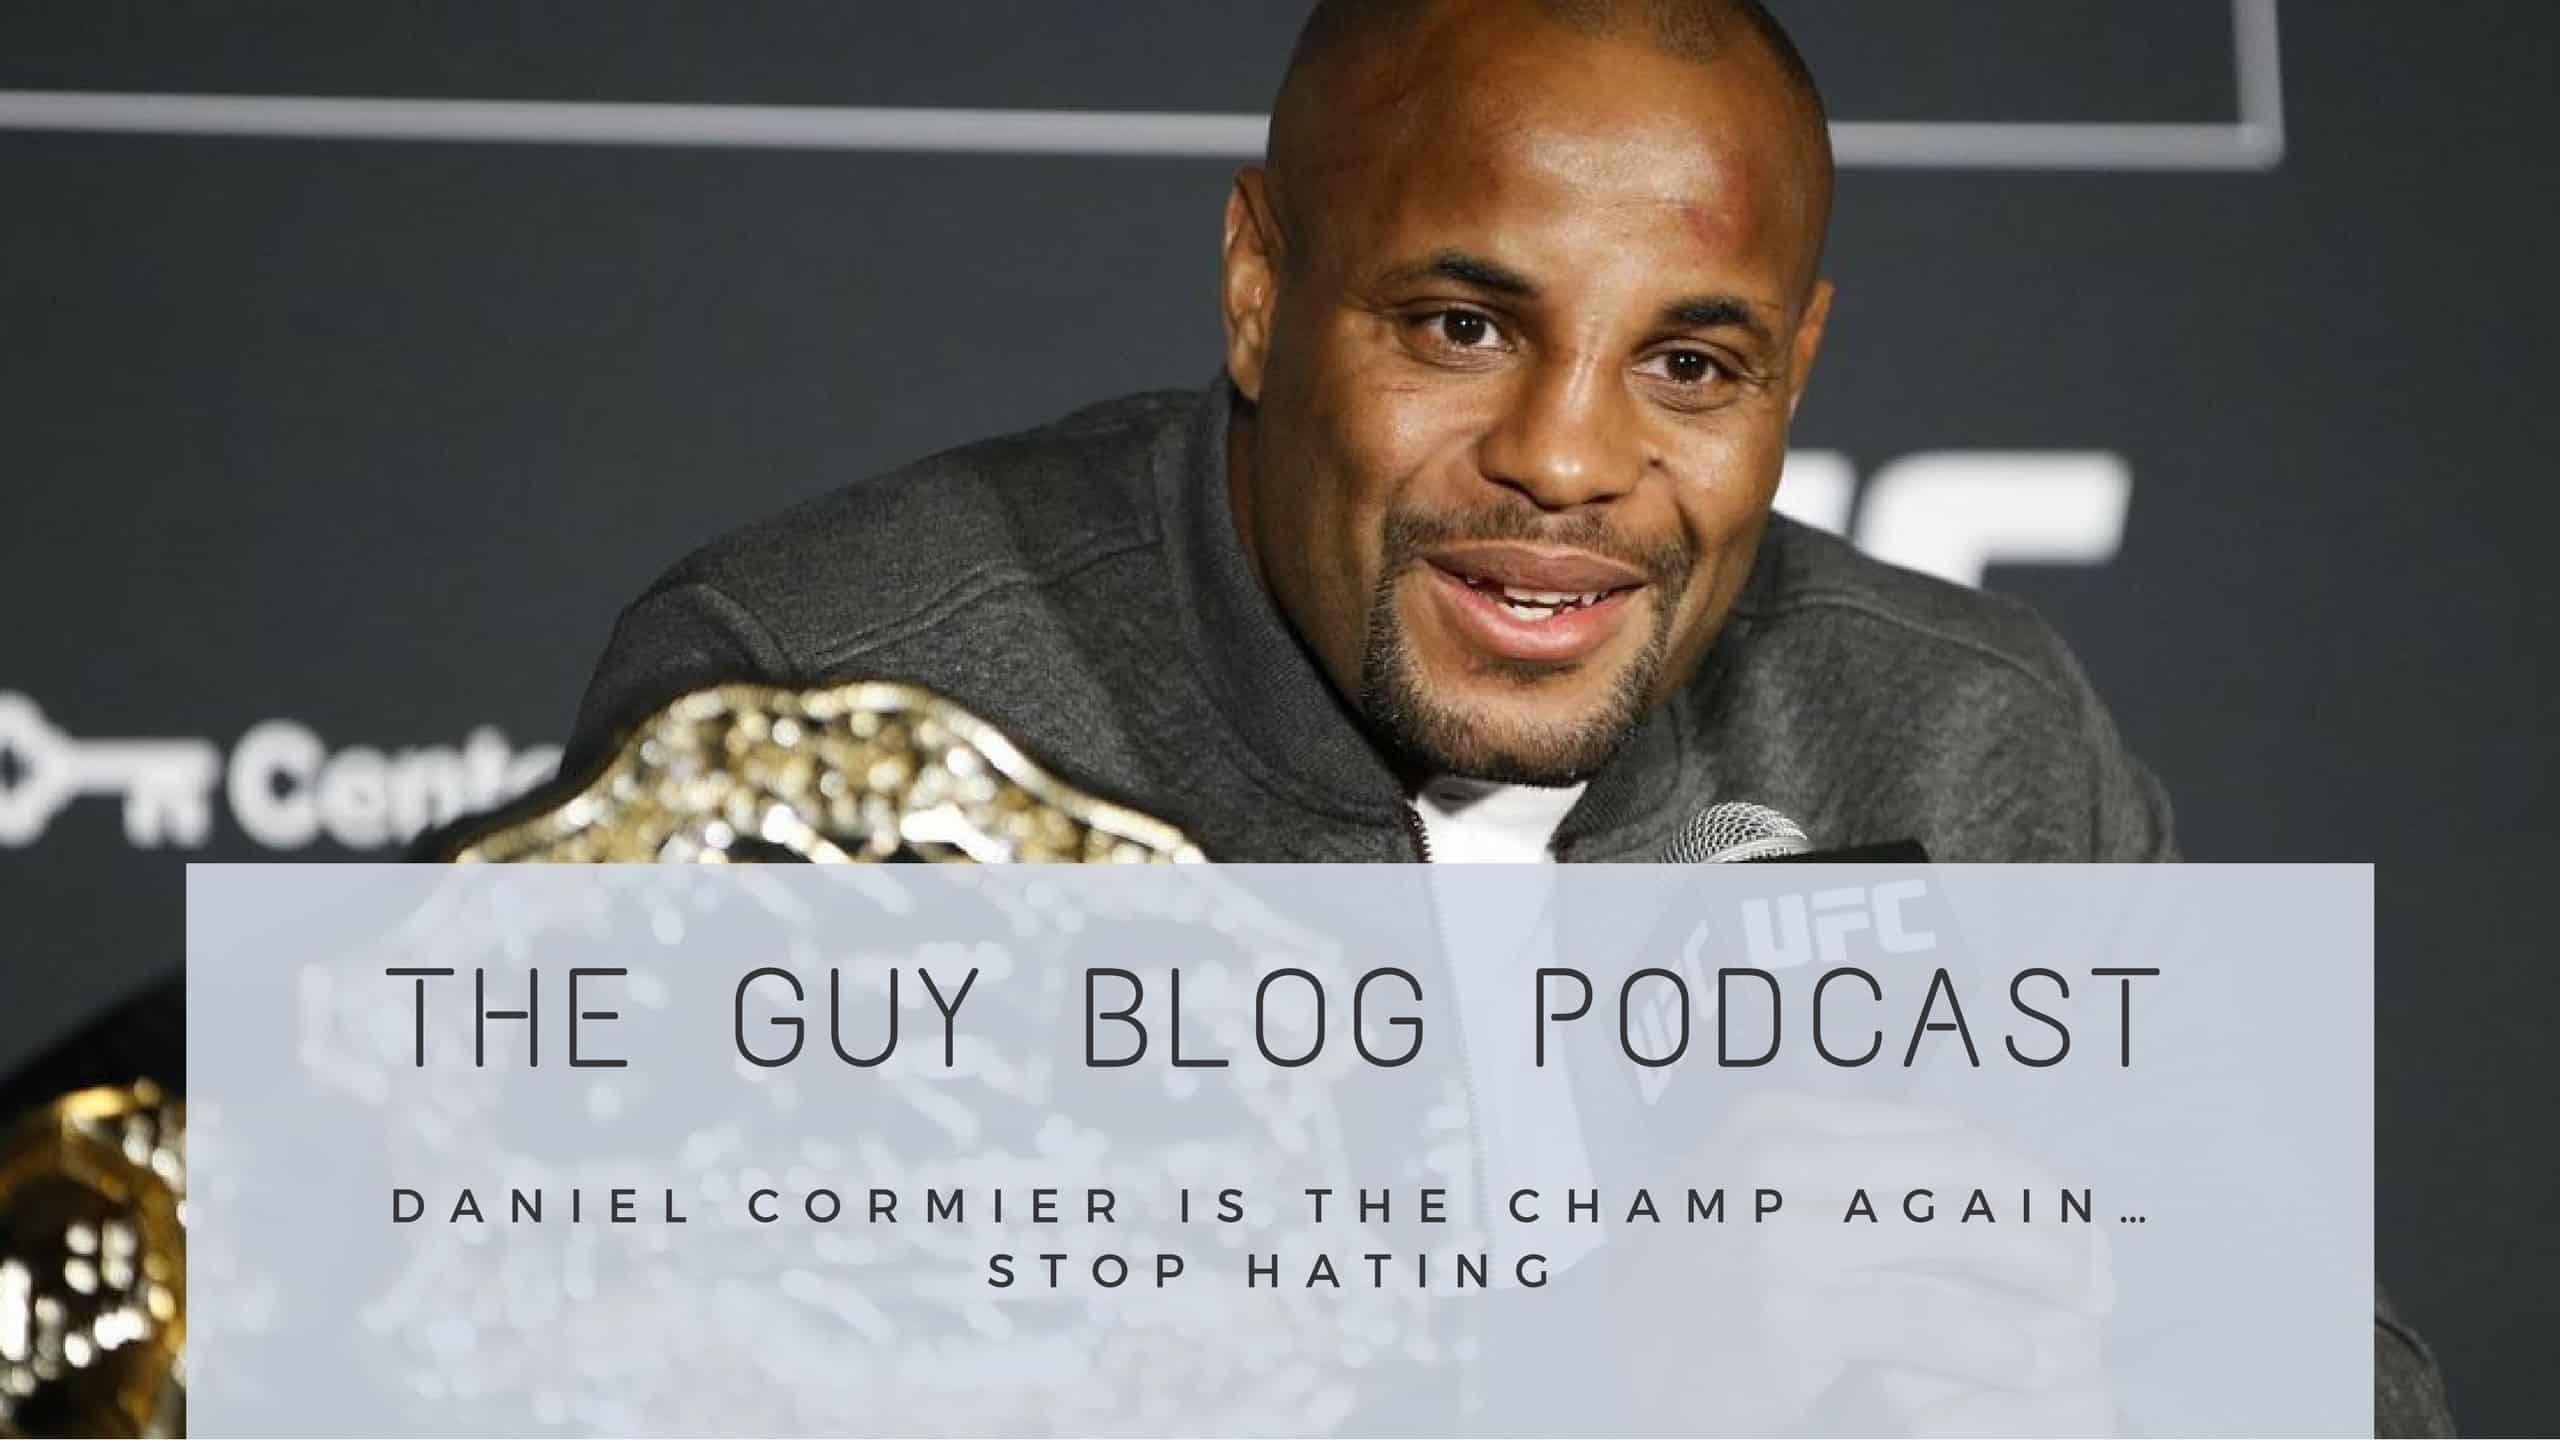 TGBP 035 Daniel Cormier Is The Champ Again… Stop Hating